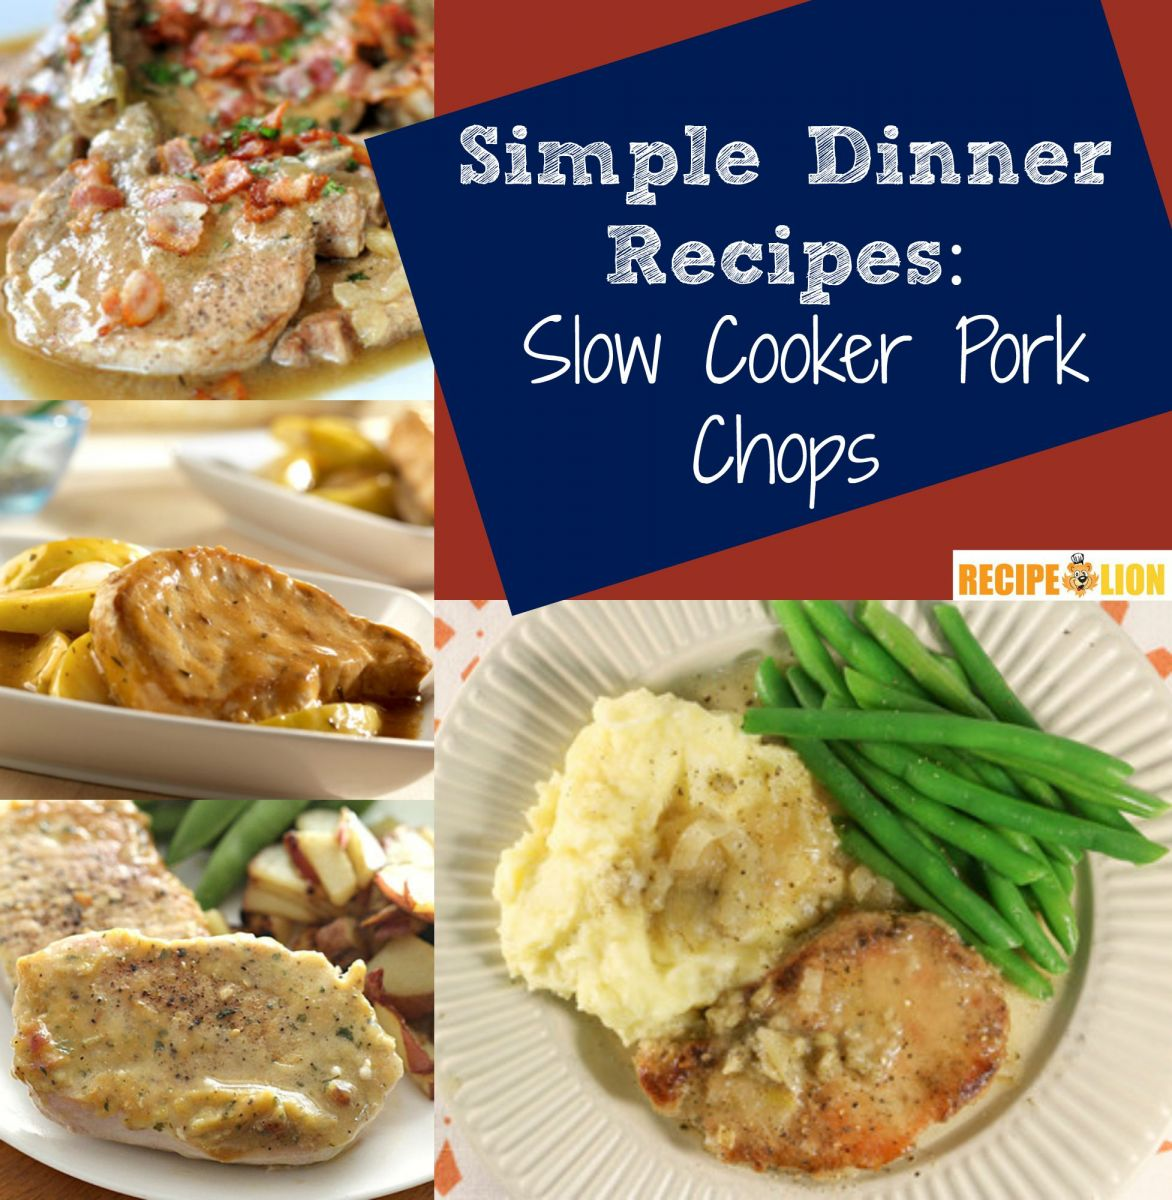 Easy Slow Cooker Pork Chops Recipes